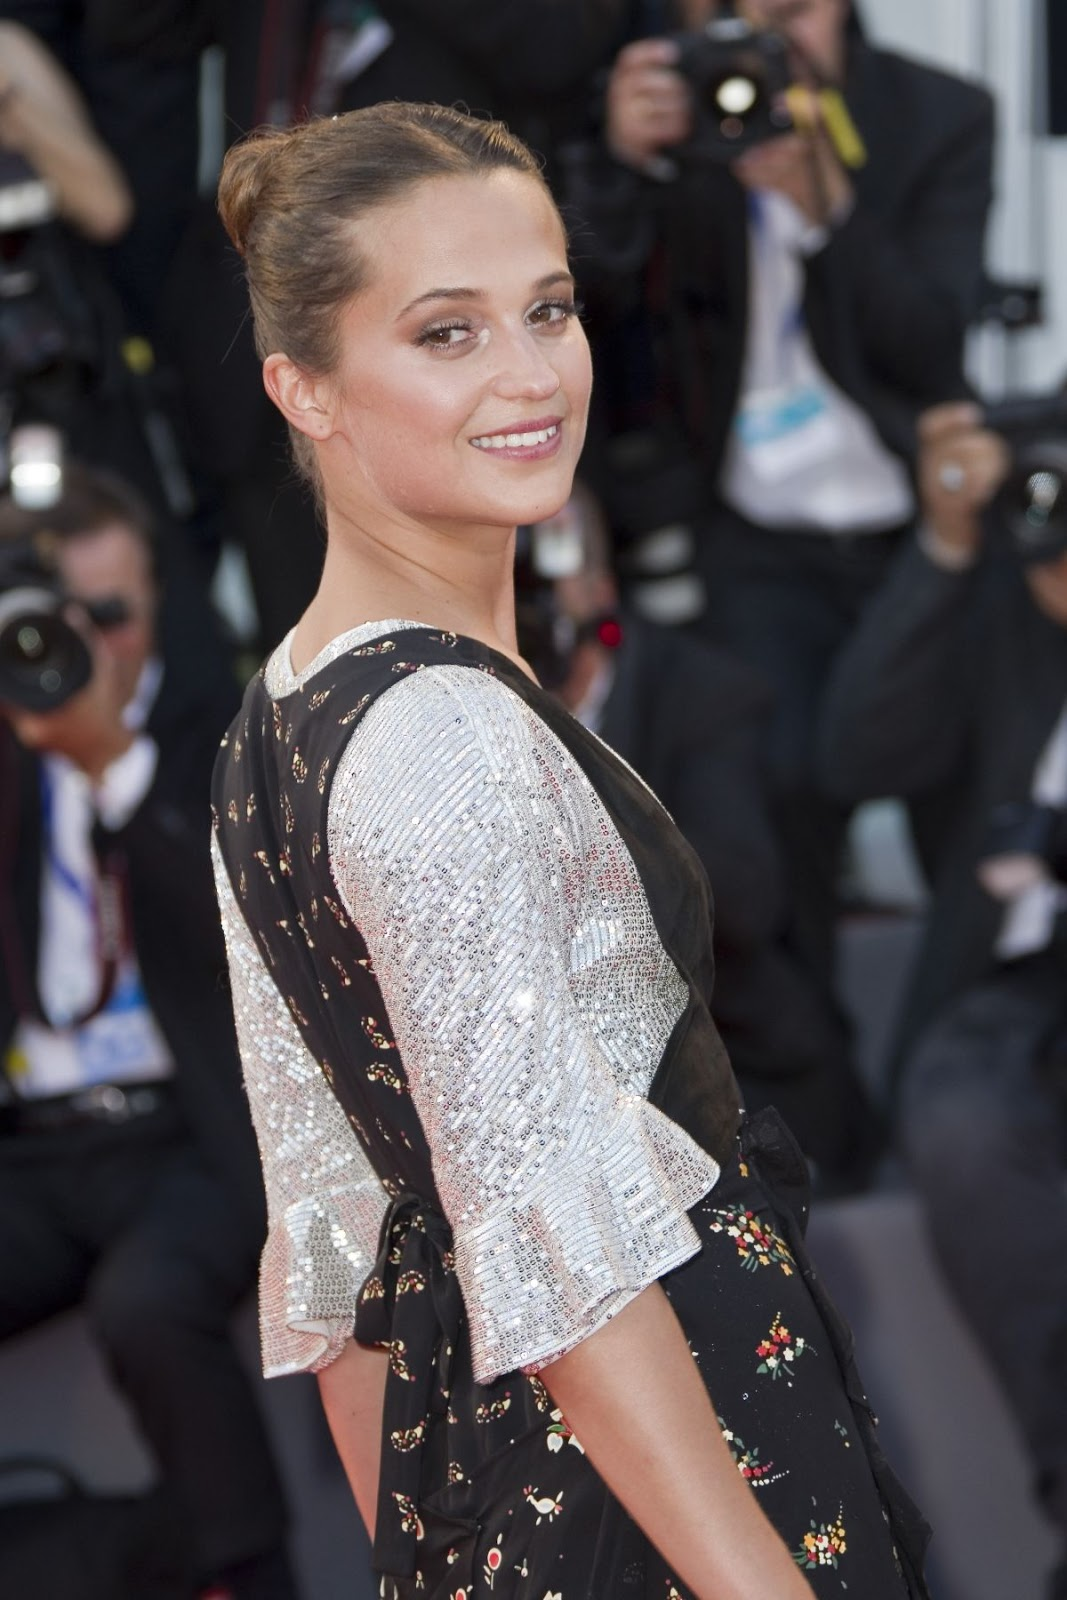 HQ Photos of Alicia Vikander at The Light Between Oceans Premiere at 73rd Venice Film Festival 2016